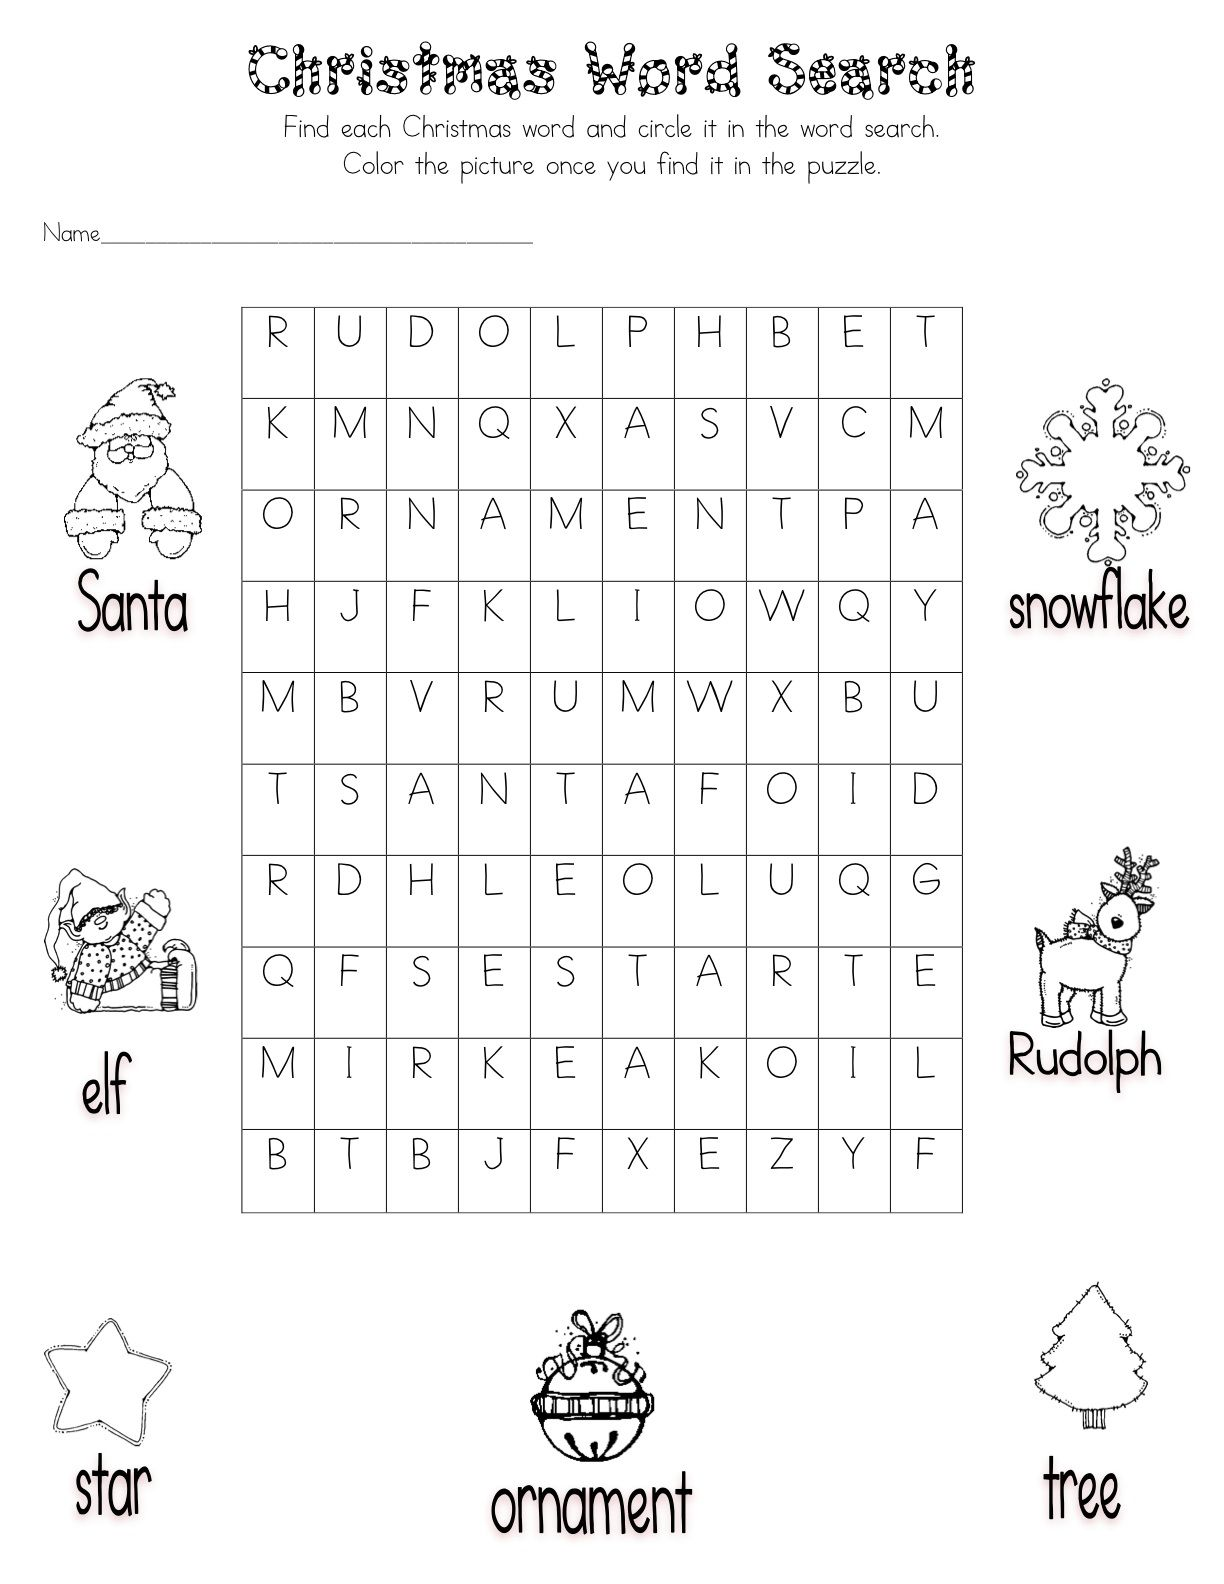 My Students Love Word Searches Did You Know That Word